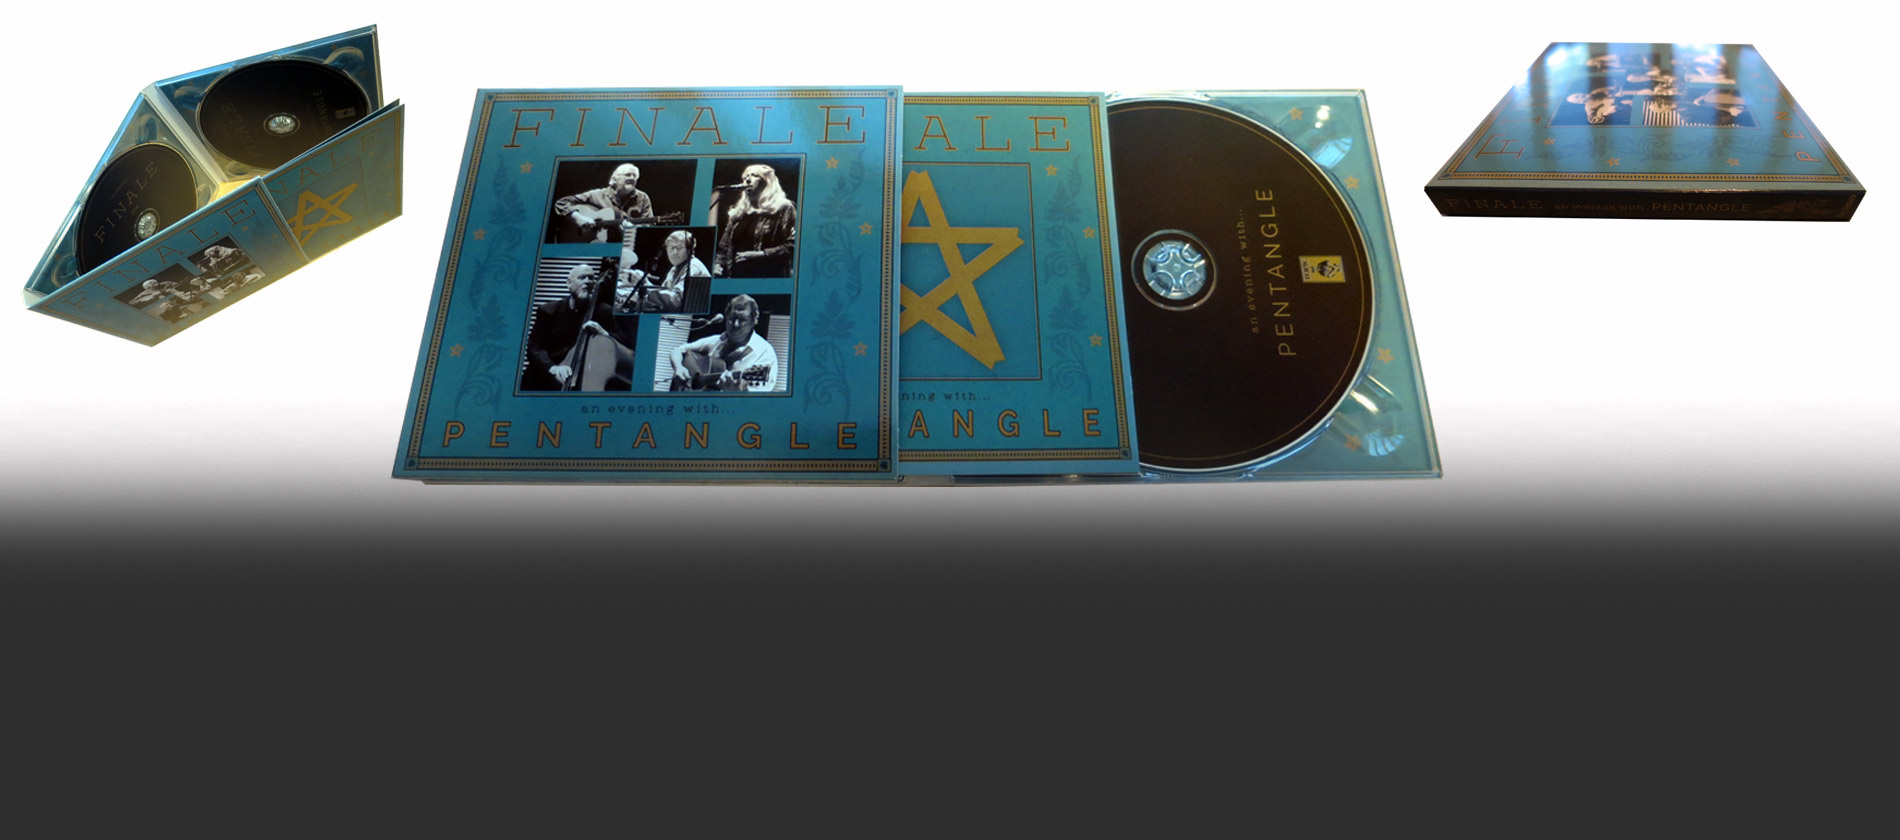 akcent media 6pp digipack 4/0